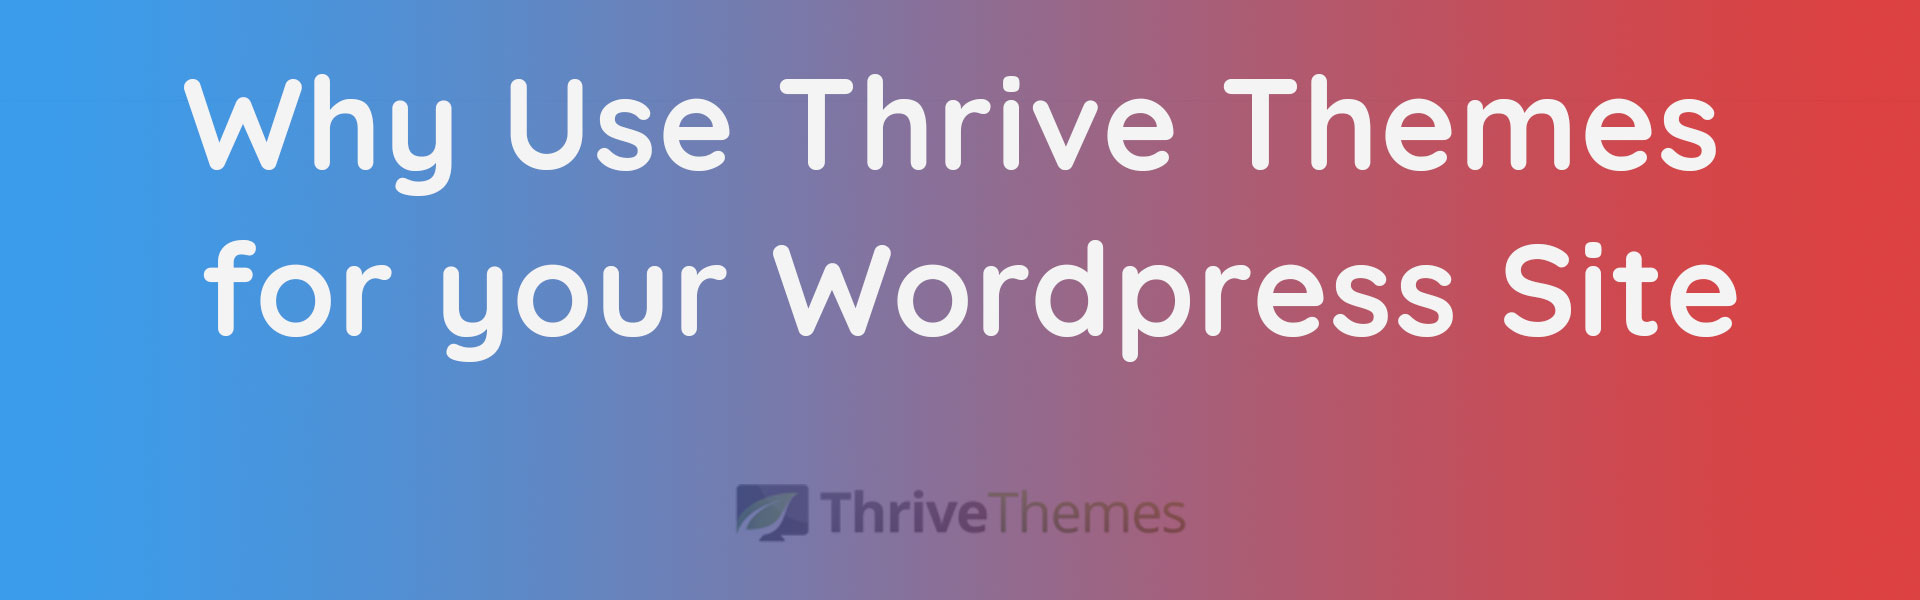 Buy WordPress Themes  Thrive Themes Ebay Price